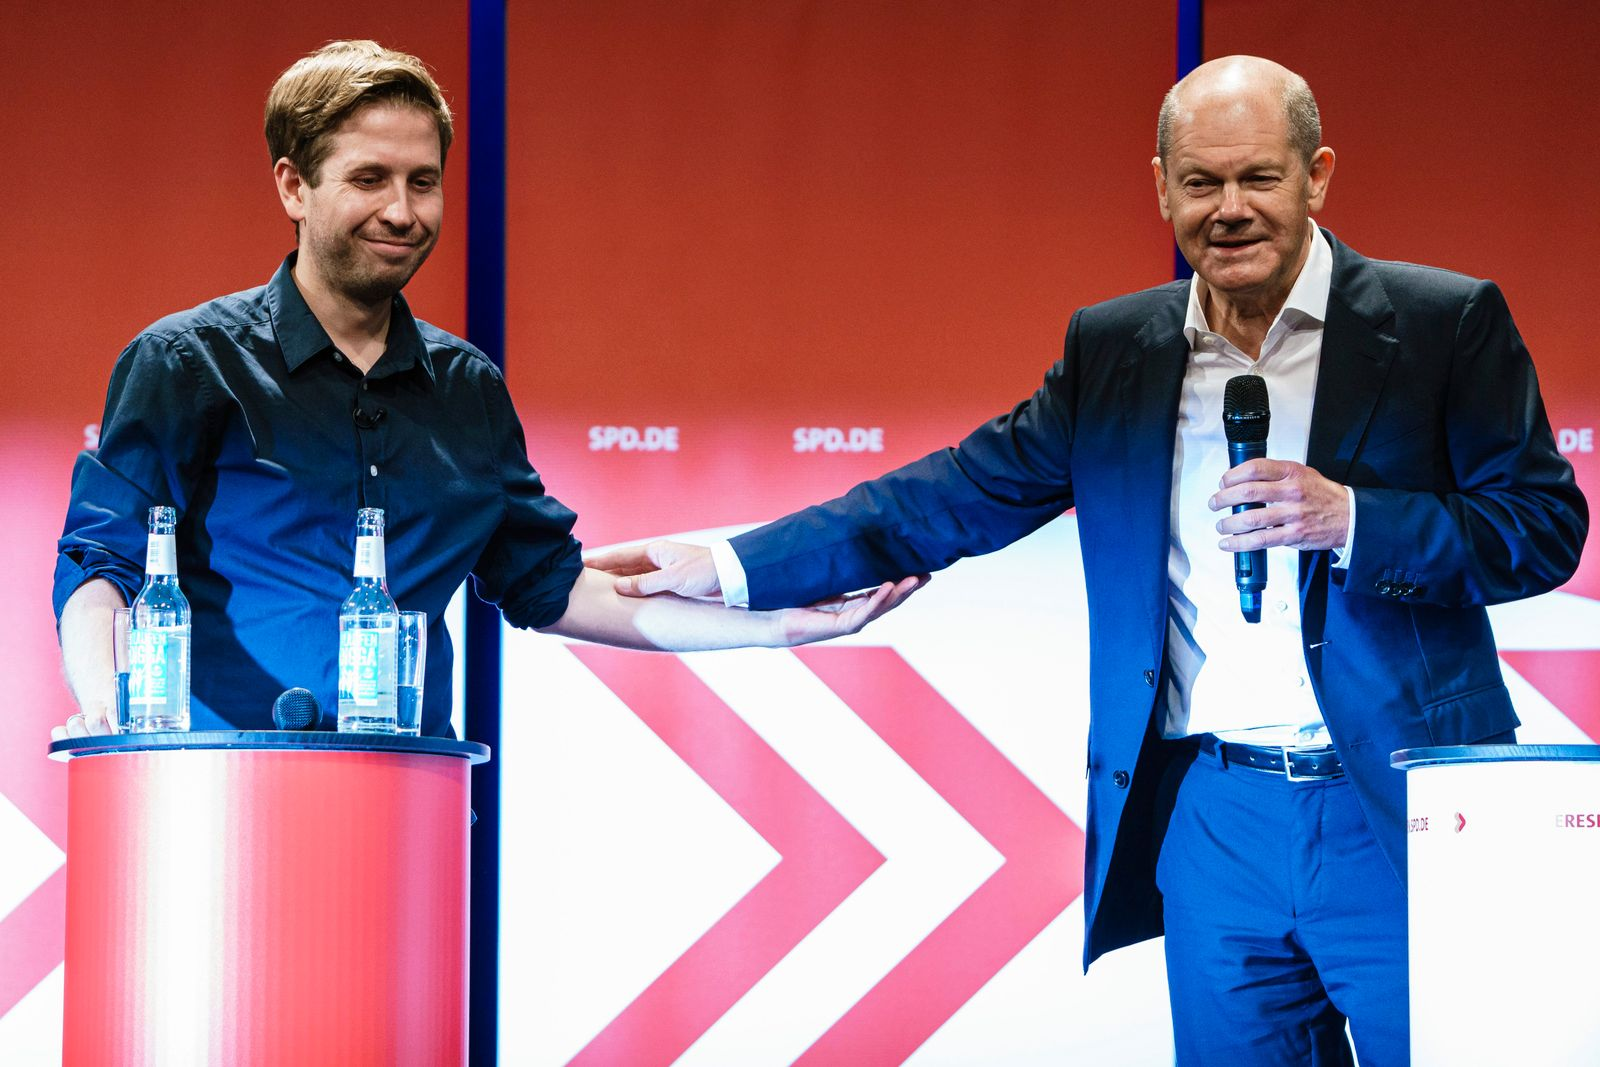 SPD top candidate for the federal elections Olaf Scholz citizen talk